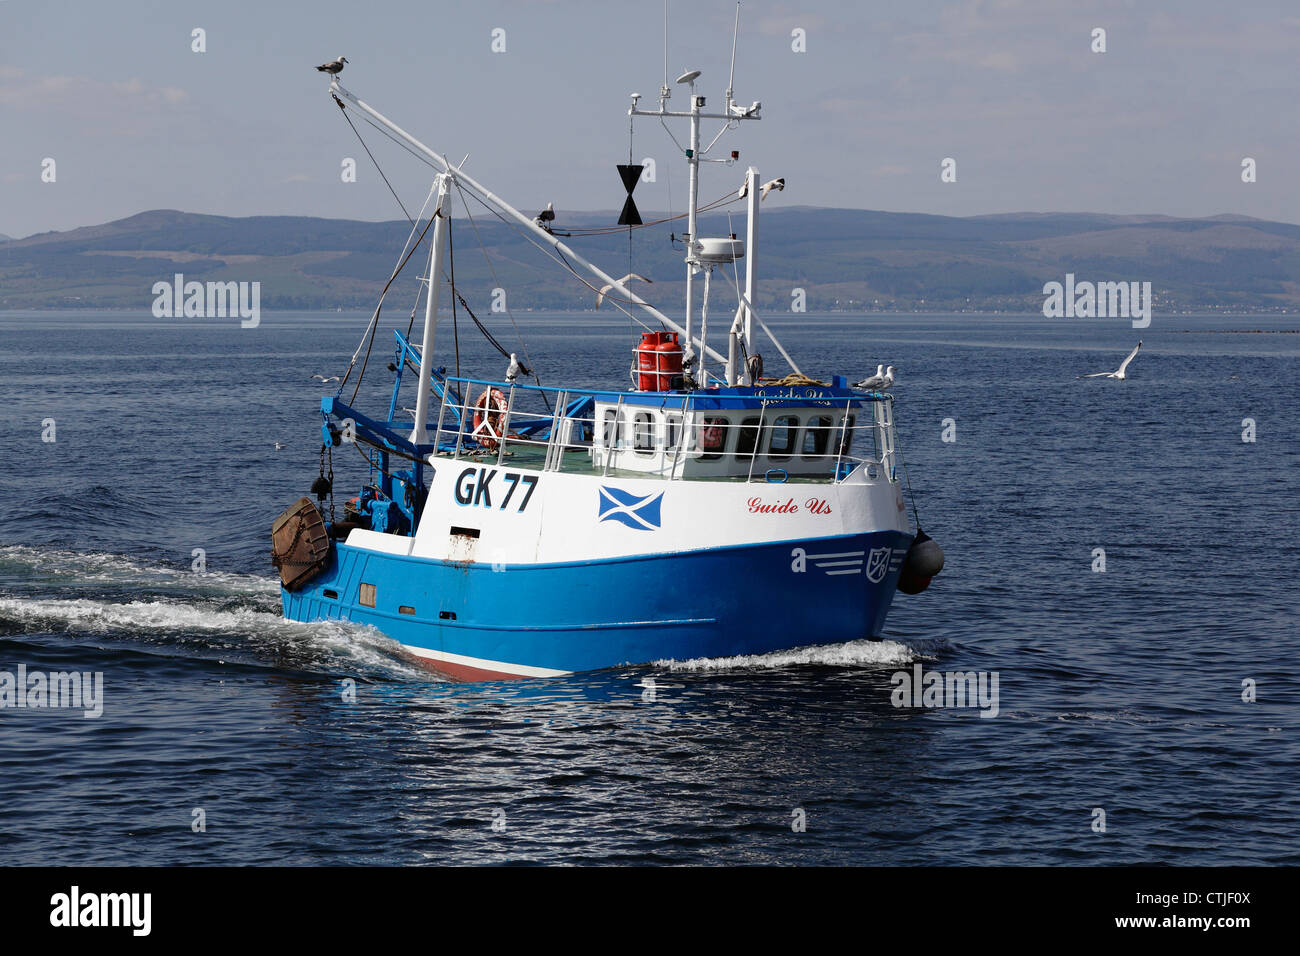 Small fishing boat Guide Us sailing off Largs  in the Firth of Clyde, North Ayrshire, Scotland, UK Stock Photo